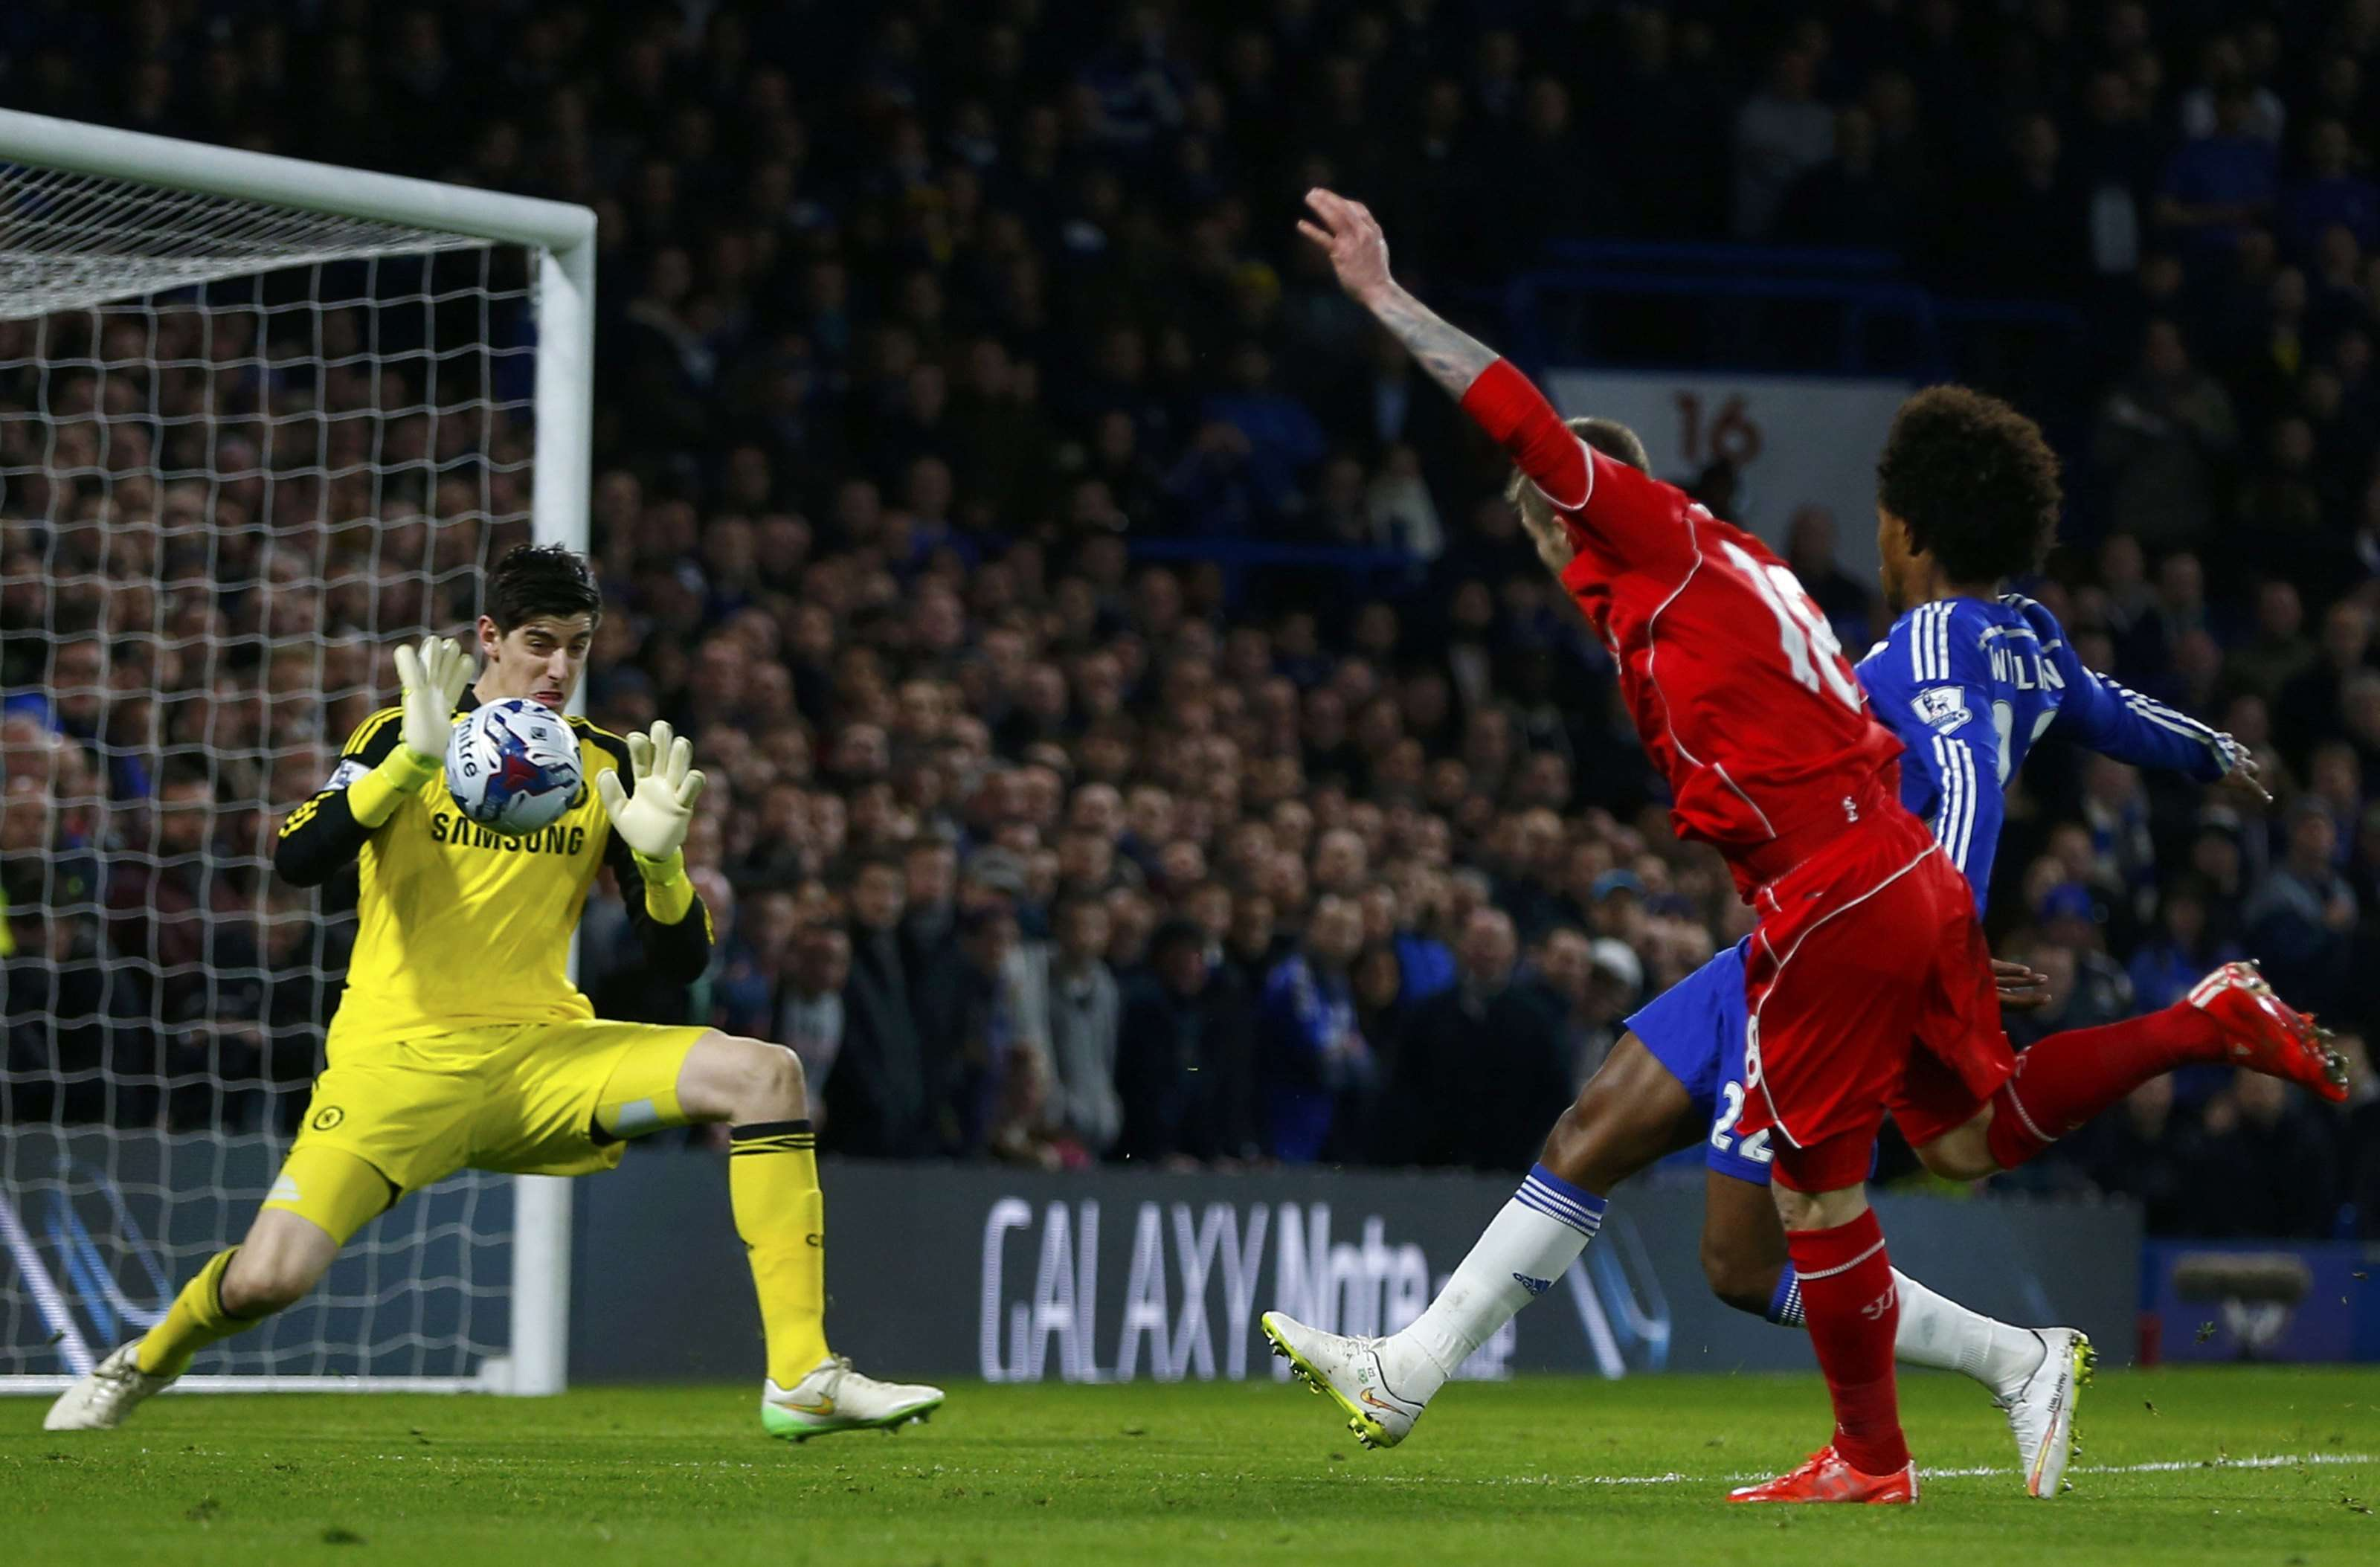 Chelsea's Thibaut Courtois (L) saves a shot from Liverpool's Alberto Moreno (C) during their English League Cup semi-final second leg soccer match at Stamford Bridge in London January 27, 2015. REUTERS/Eddie Keogh (BRITAIN - Tags: SOCCER SPORT) Foto: EDDIE KEOGH/REUTERS